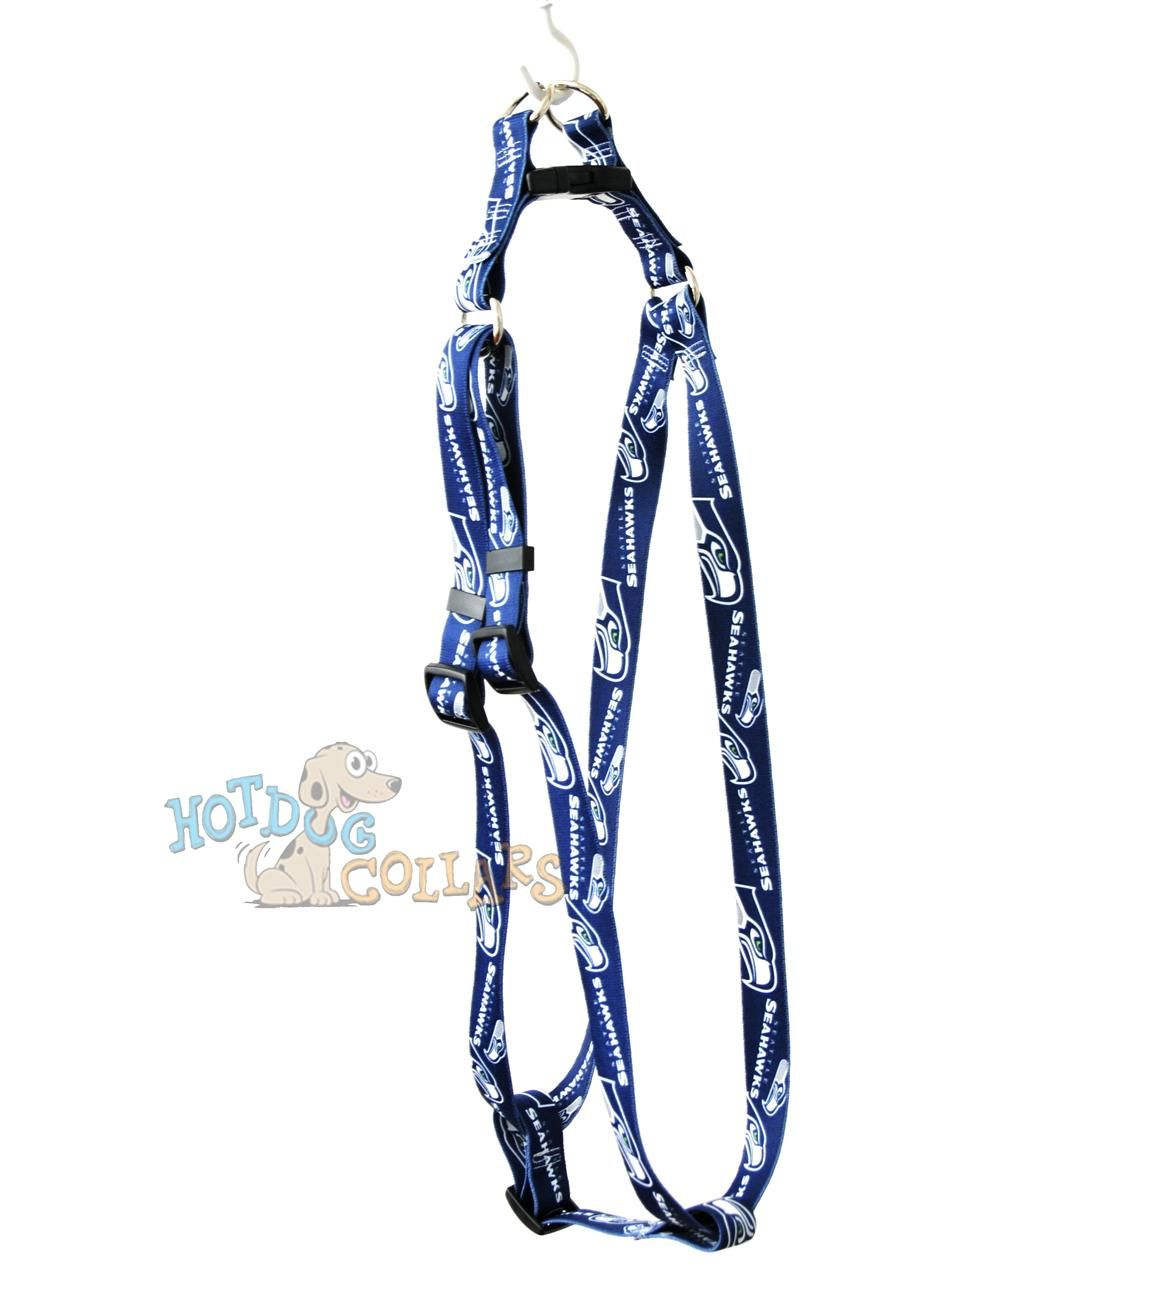 324641f129a3d03f165e6d9b509b3d1f seattle seahawks step in dog harness seahawks, seattle and 12th man